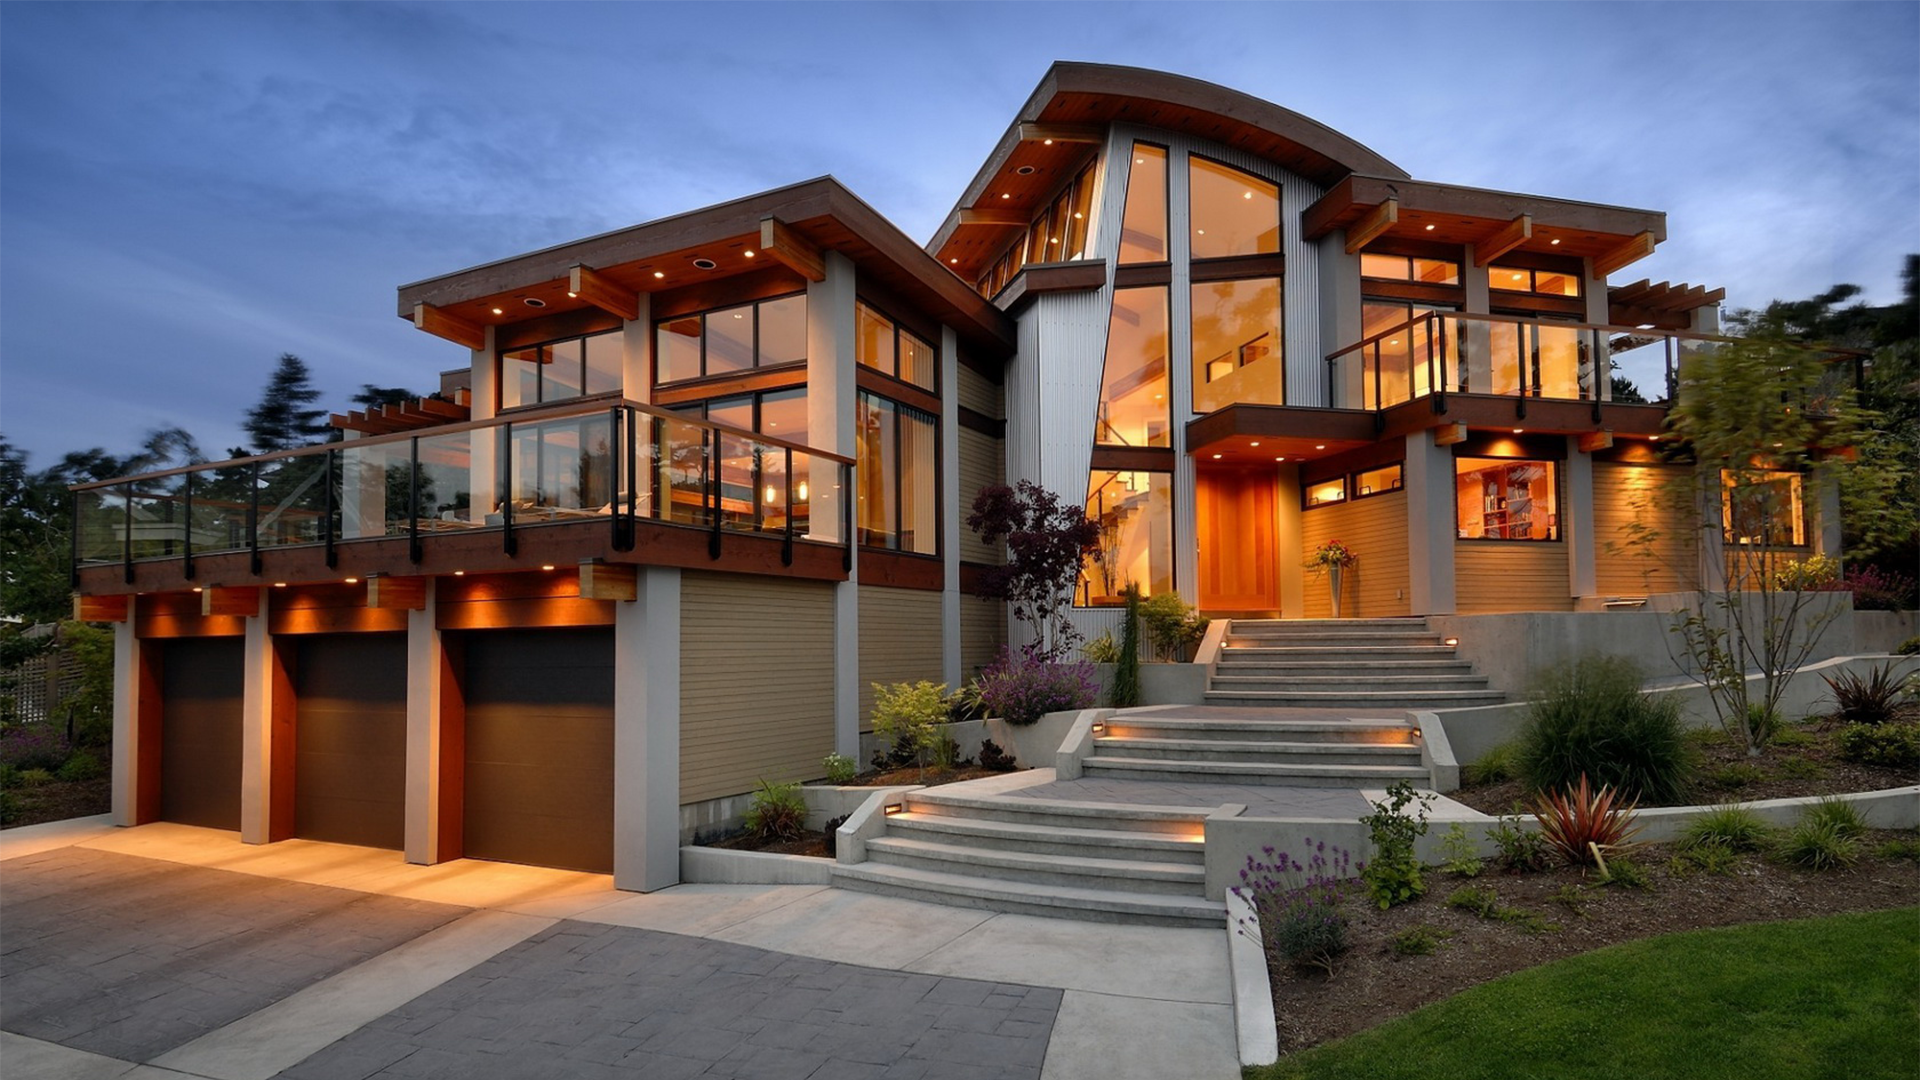 PNG HD Of Homes - 147375